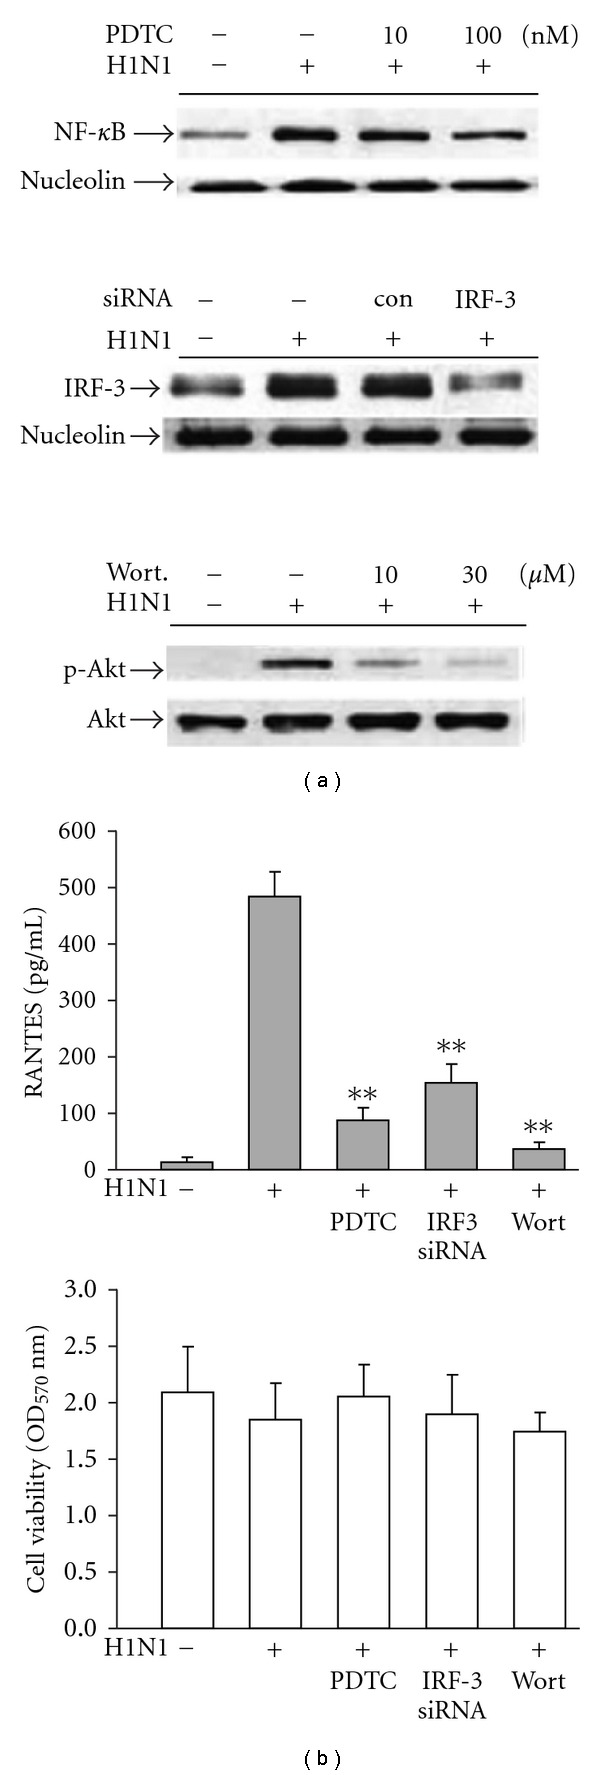 (a) Inhibitory effects of pyrrolidinedithio carbamate (PDTC, a NF- κ B inhibitor), IRF-3 siRNA and wortmannin (wort, a PI3K inhibitor) on the nuclear translocation of NF- κ B/IRF-3 and phosphorylation of Akt in H1N1-infected A549 cells and (b) the same treatment on RANTES accumulation (100 nM PDTC, 100 nM siRNA and 30 μ M wortmannin). For nuclear translocation assay, cells were lysed at 16 h p.i. and nuclear protein was extracted for western blot analysis as described in Section 2 . While assessing Akt phosphorylation, cells were lysed at 6 h p.i. then cytosolic protein was extracted. For RANTES measurement, culture medium was collected at 48 h (p.i.). Data reported are mean ± SE of six independent experiments, each performed in triplicate. ** P